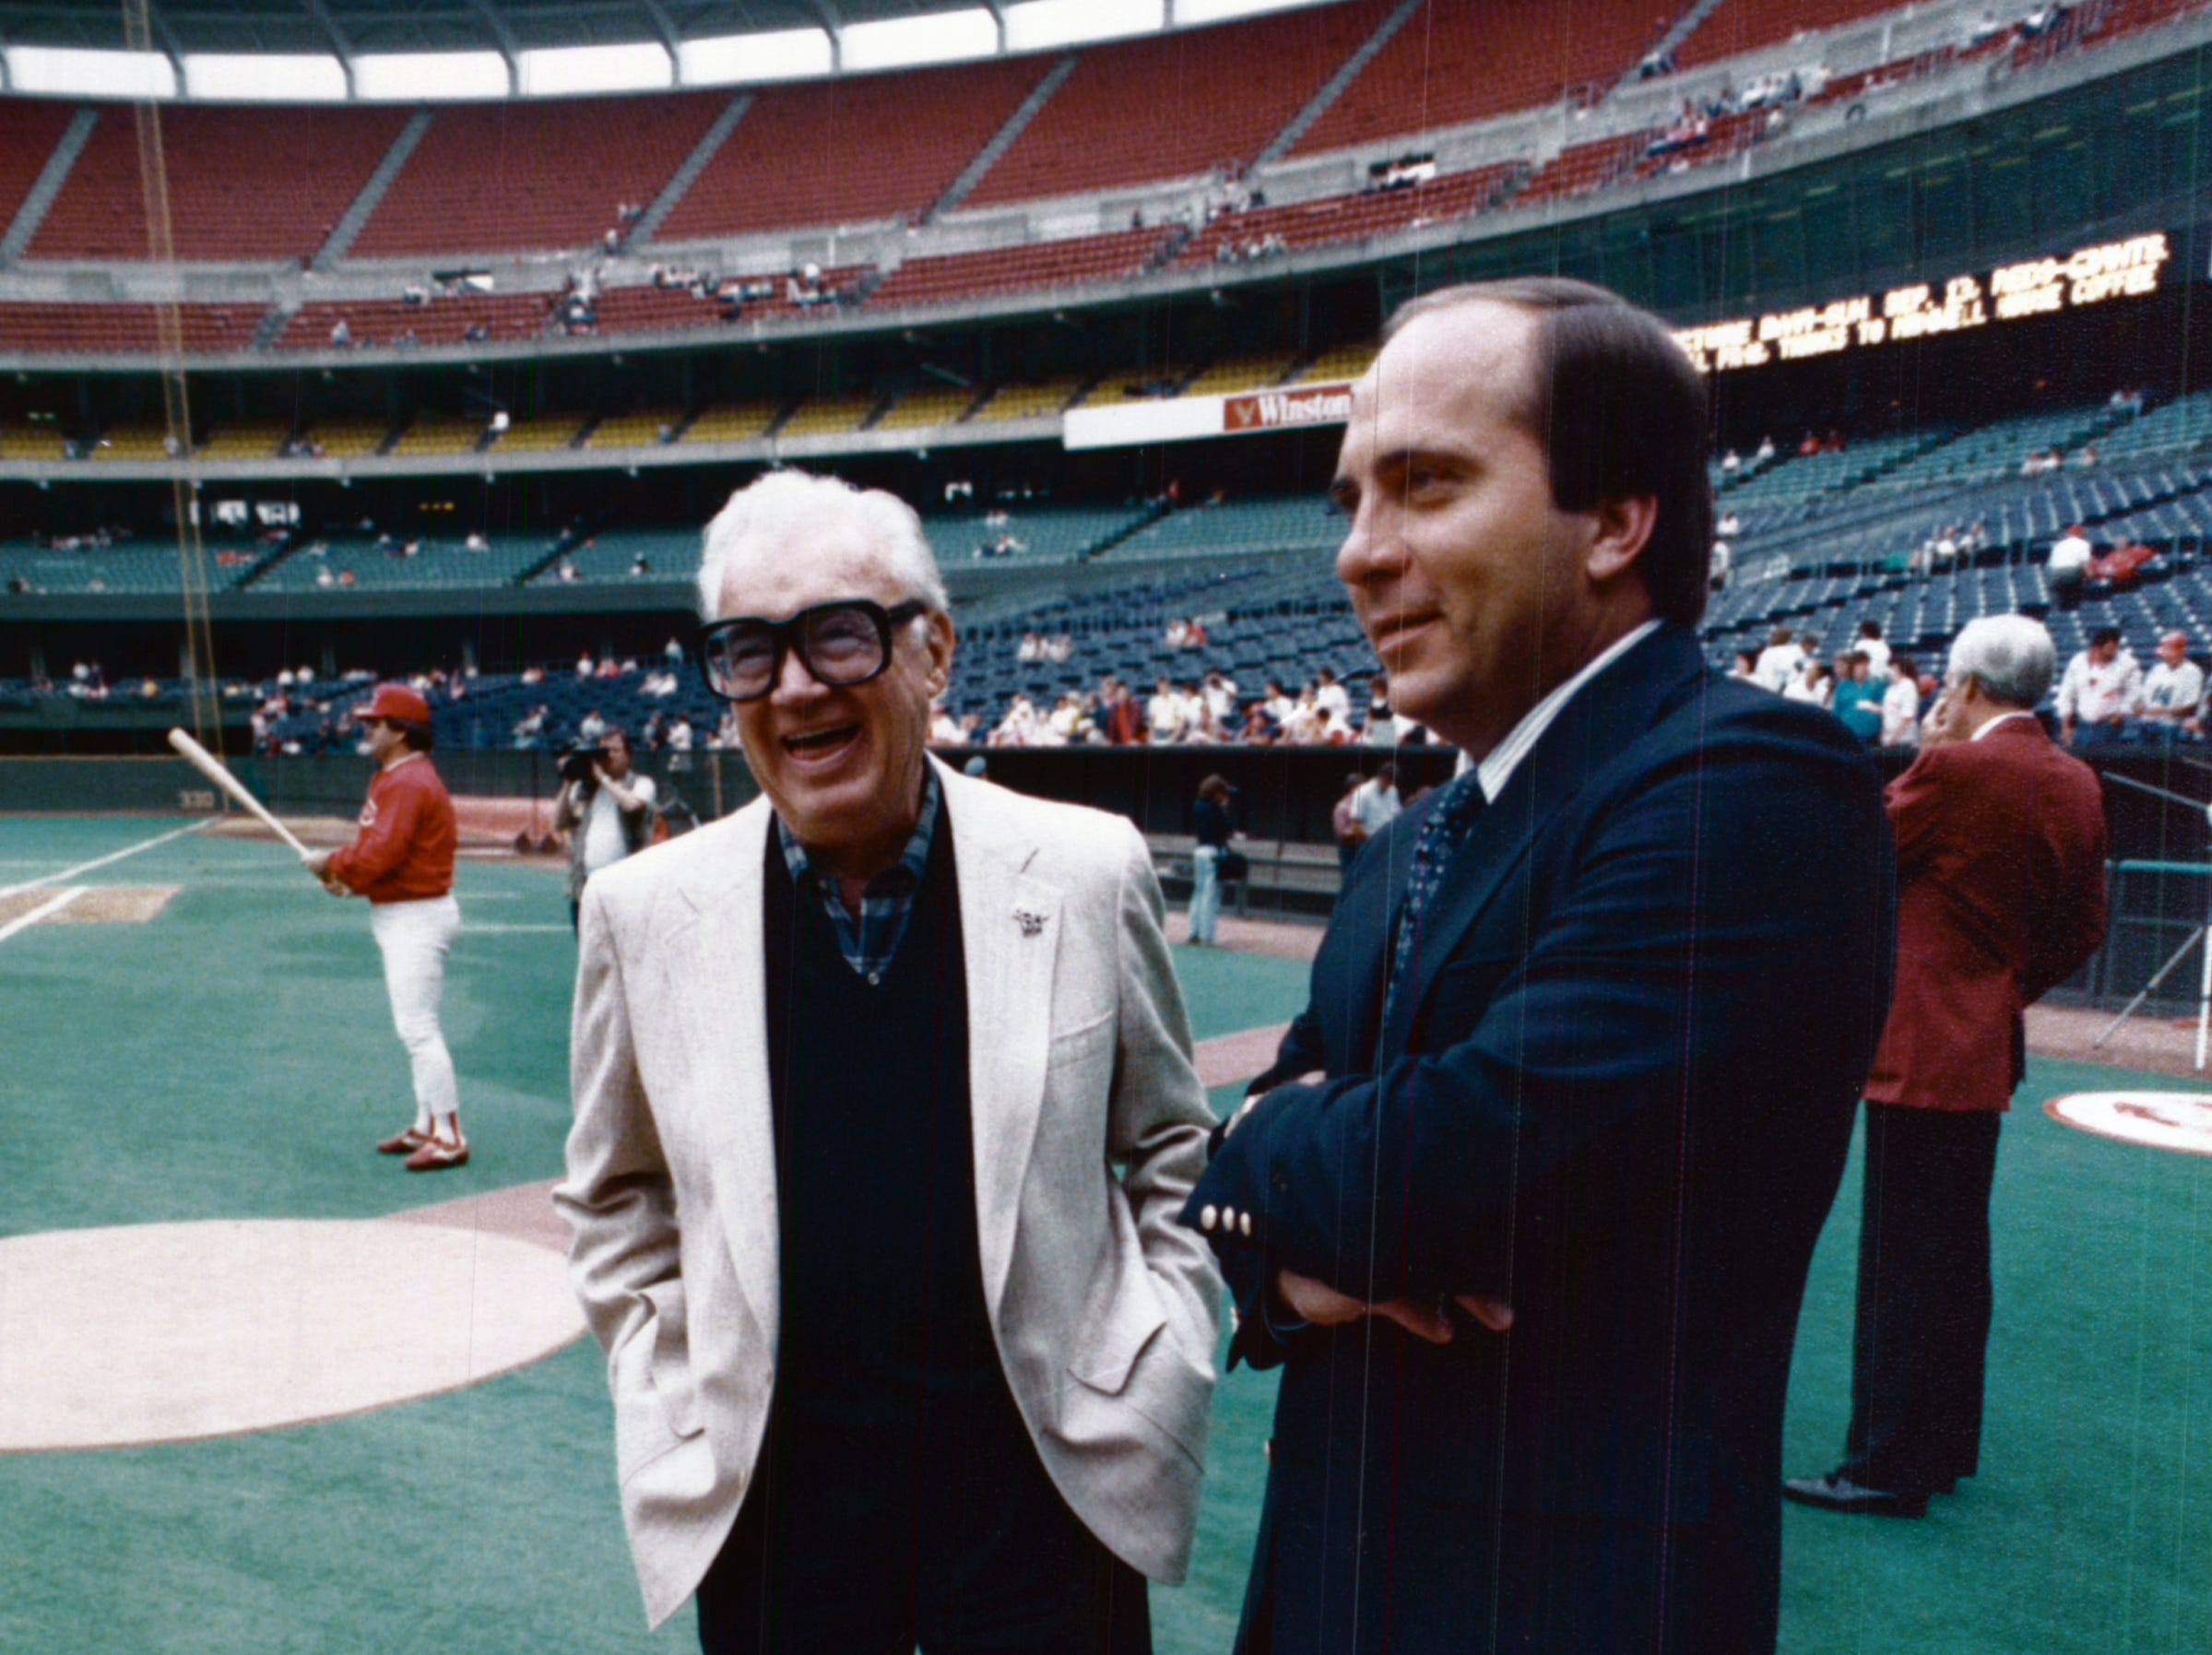 1987: Harry Carey and Johnny Bench at Cubs-Reds 1987. The Enquirer/Michael E. Keating